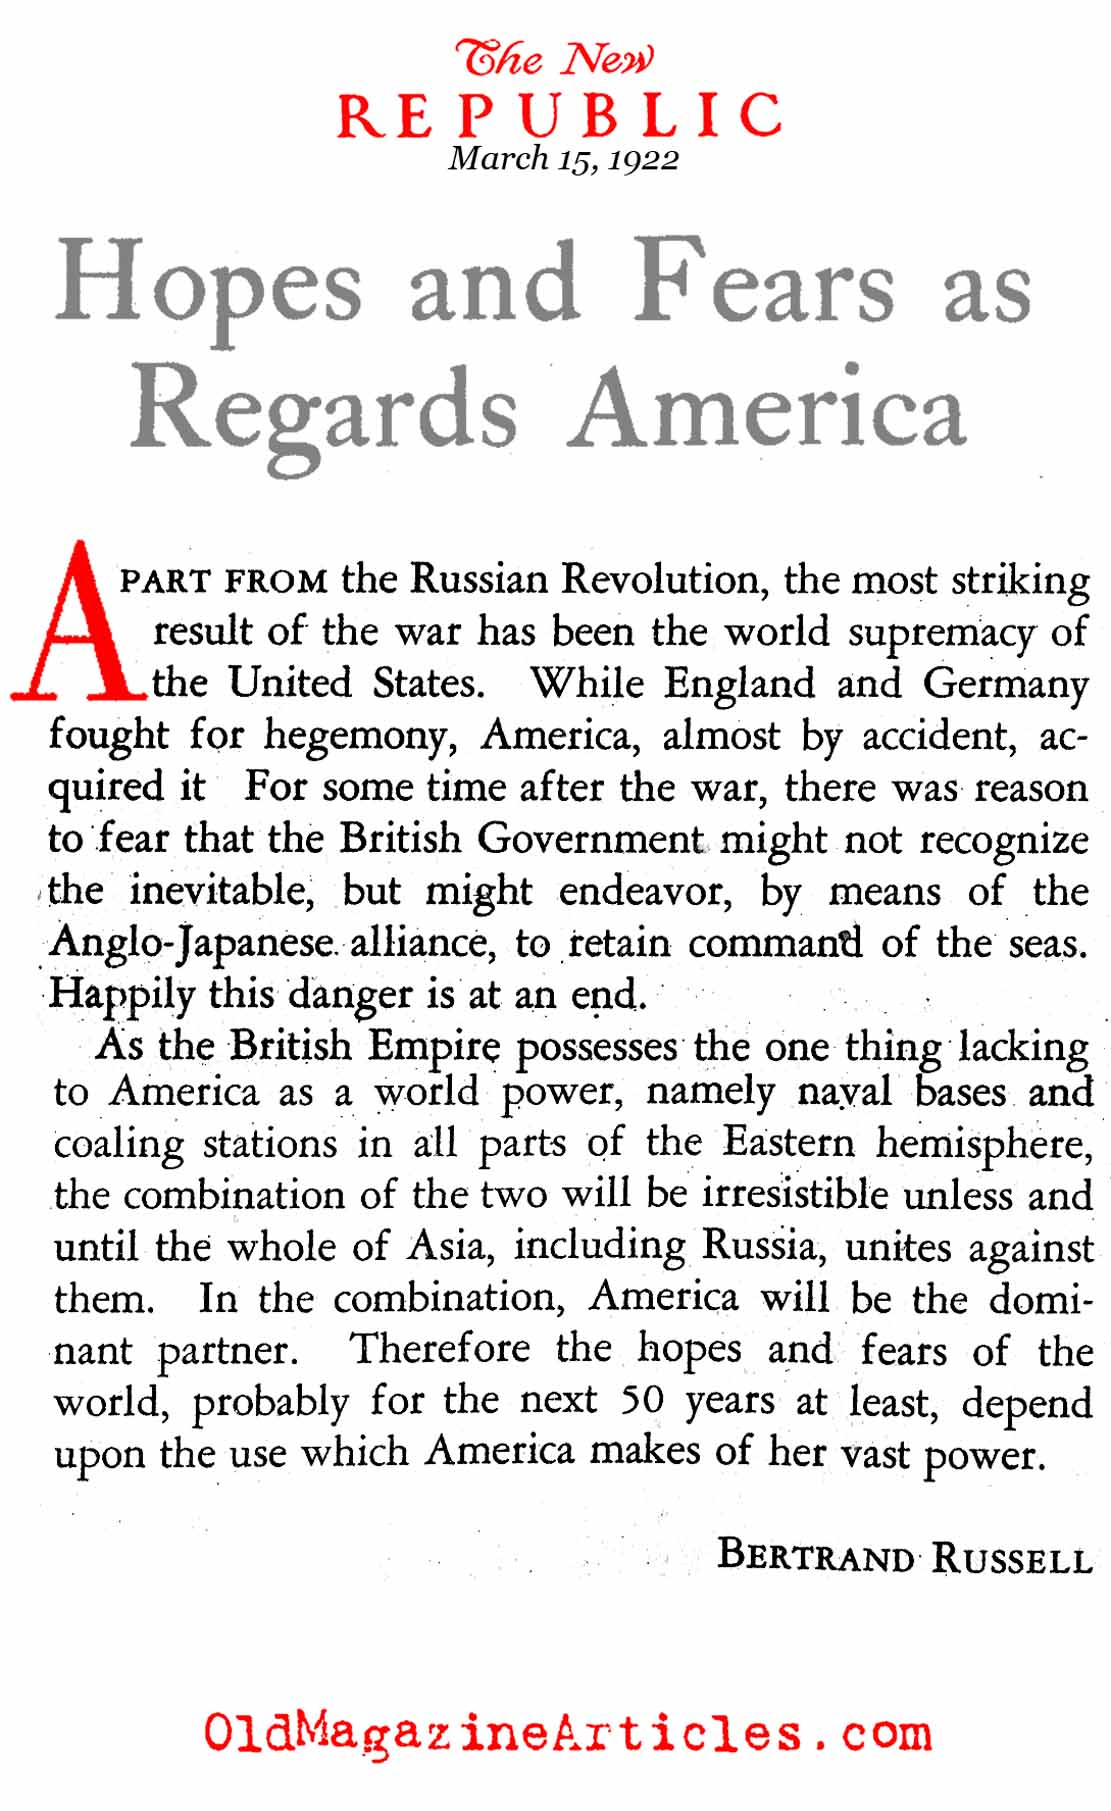 The Emergence of a New World Power (The New Republic, 1922)